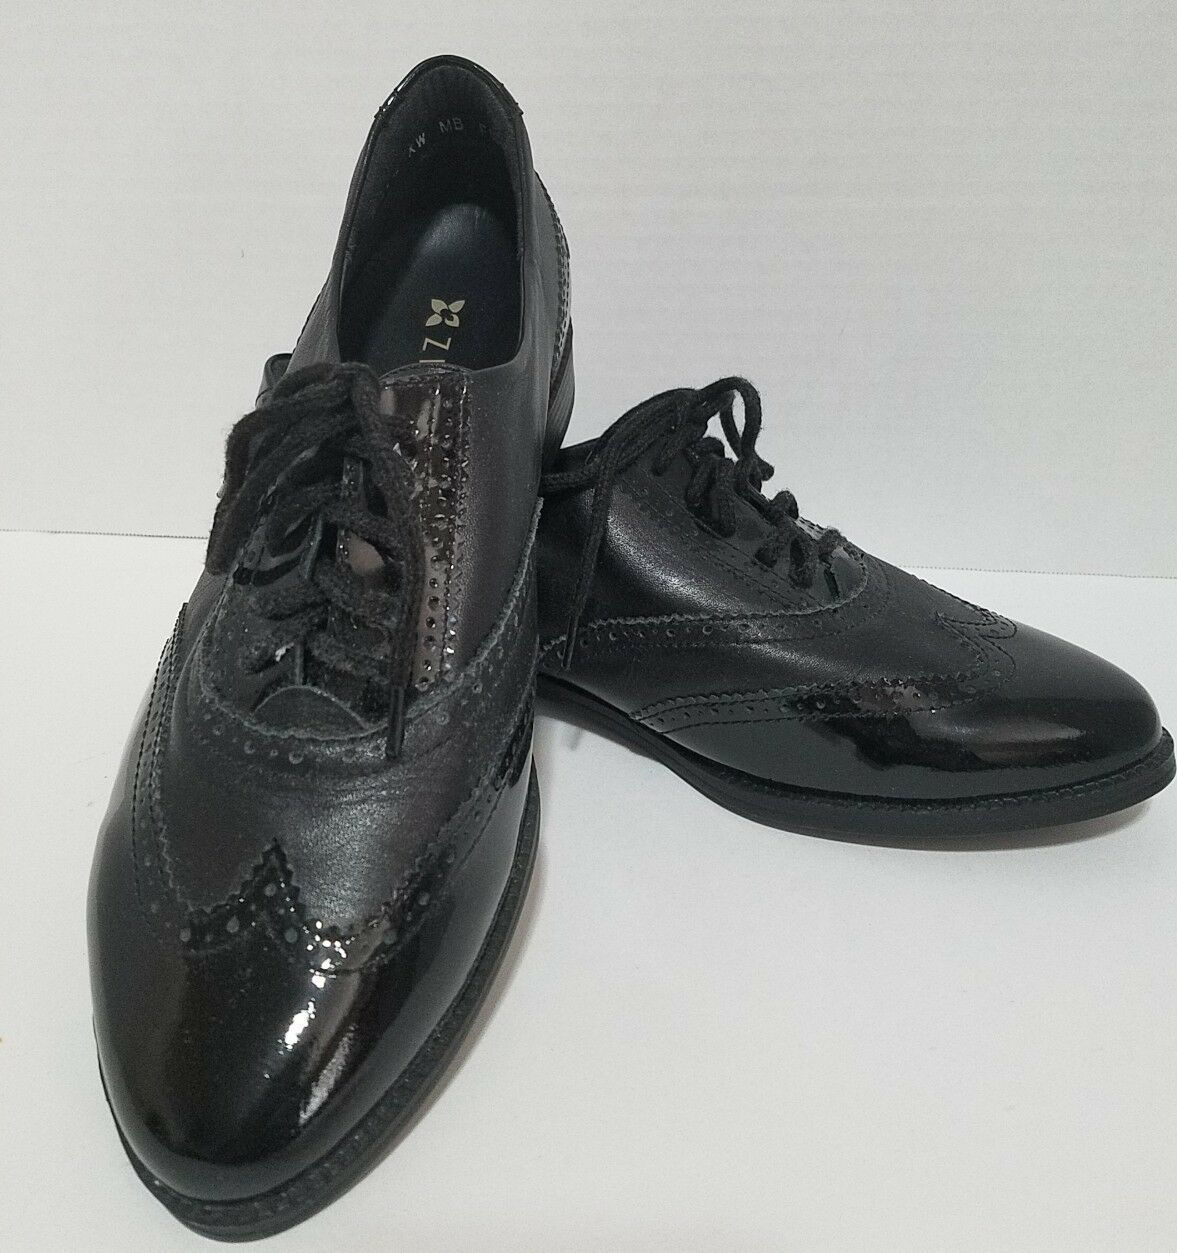 Ziera Womens Flat Oxford Black Patent Leather Orthotics shoes 37.5  OR 7 Brogues